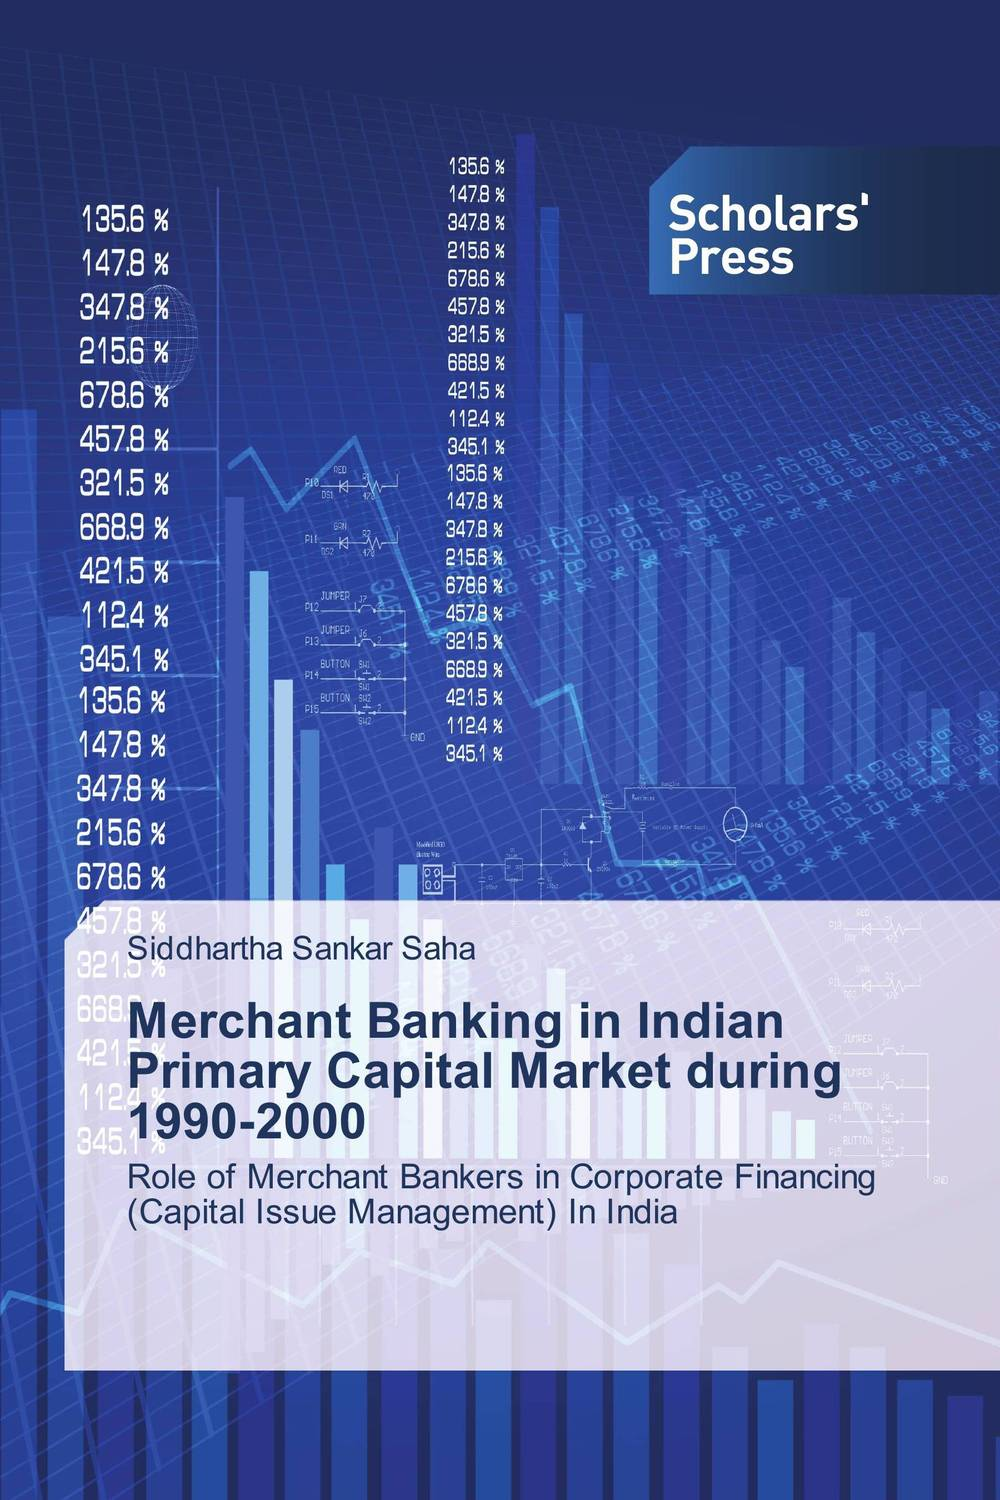 Merchant Banking in Indian Primary Capital Market during 1990-2000